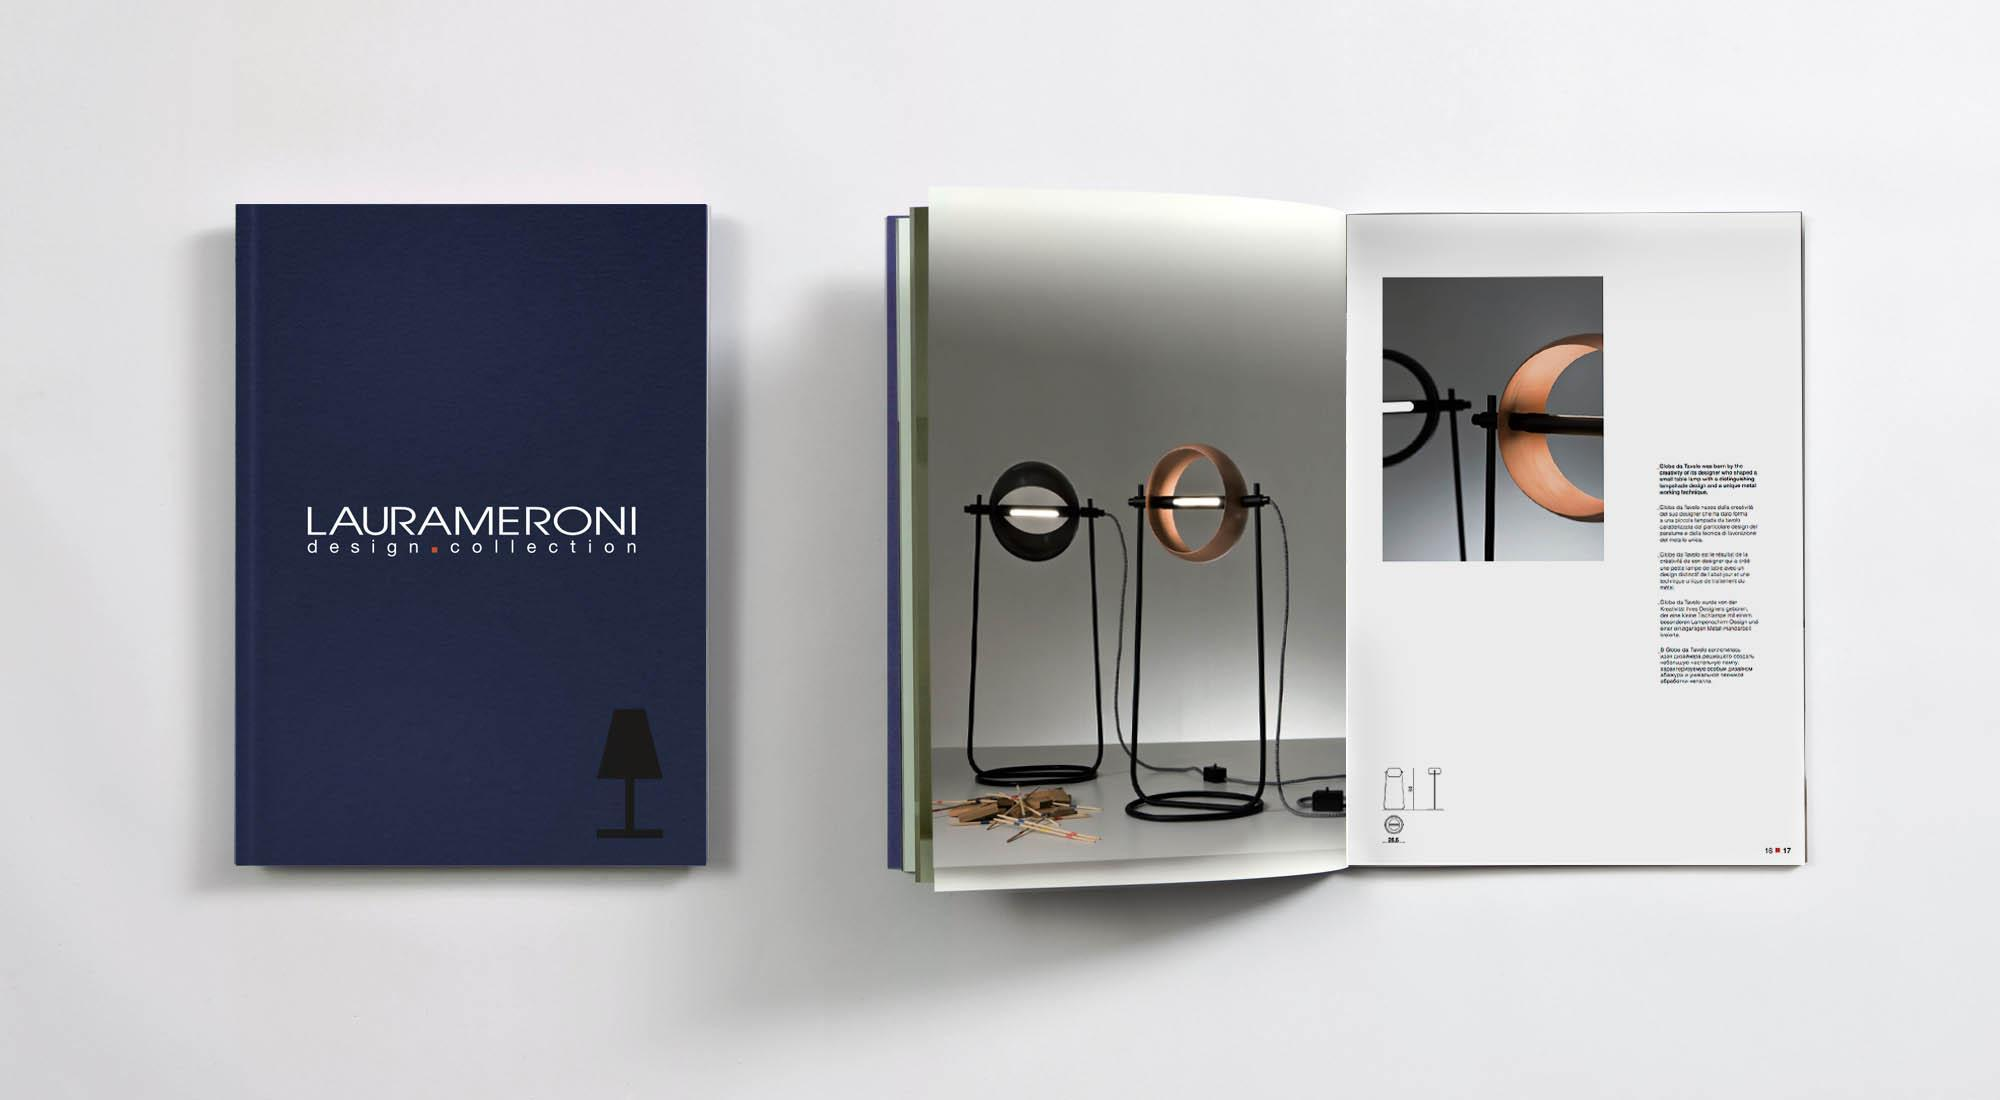 laurameroni design collection luxury lamps catalogue free download